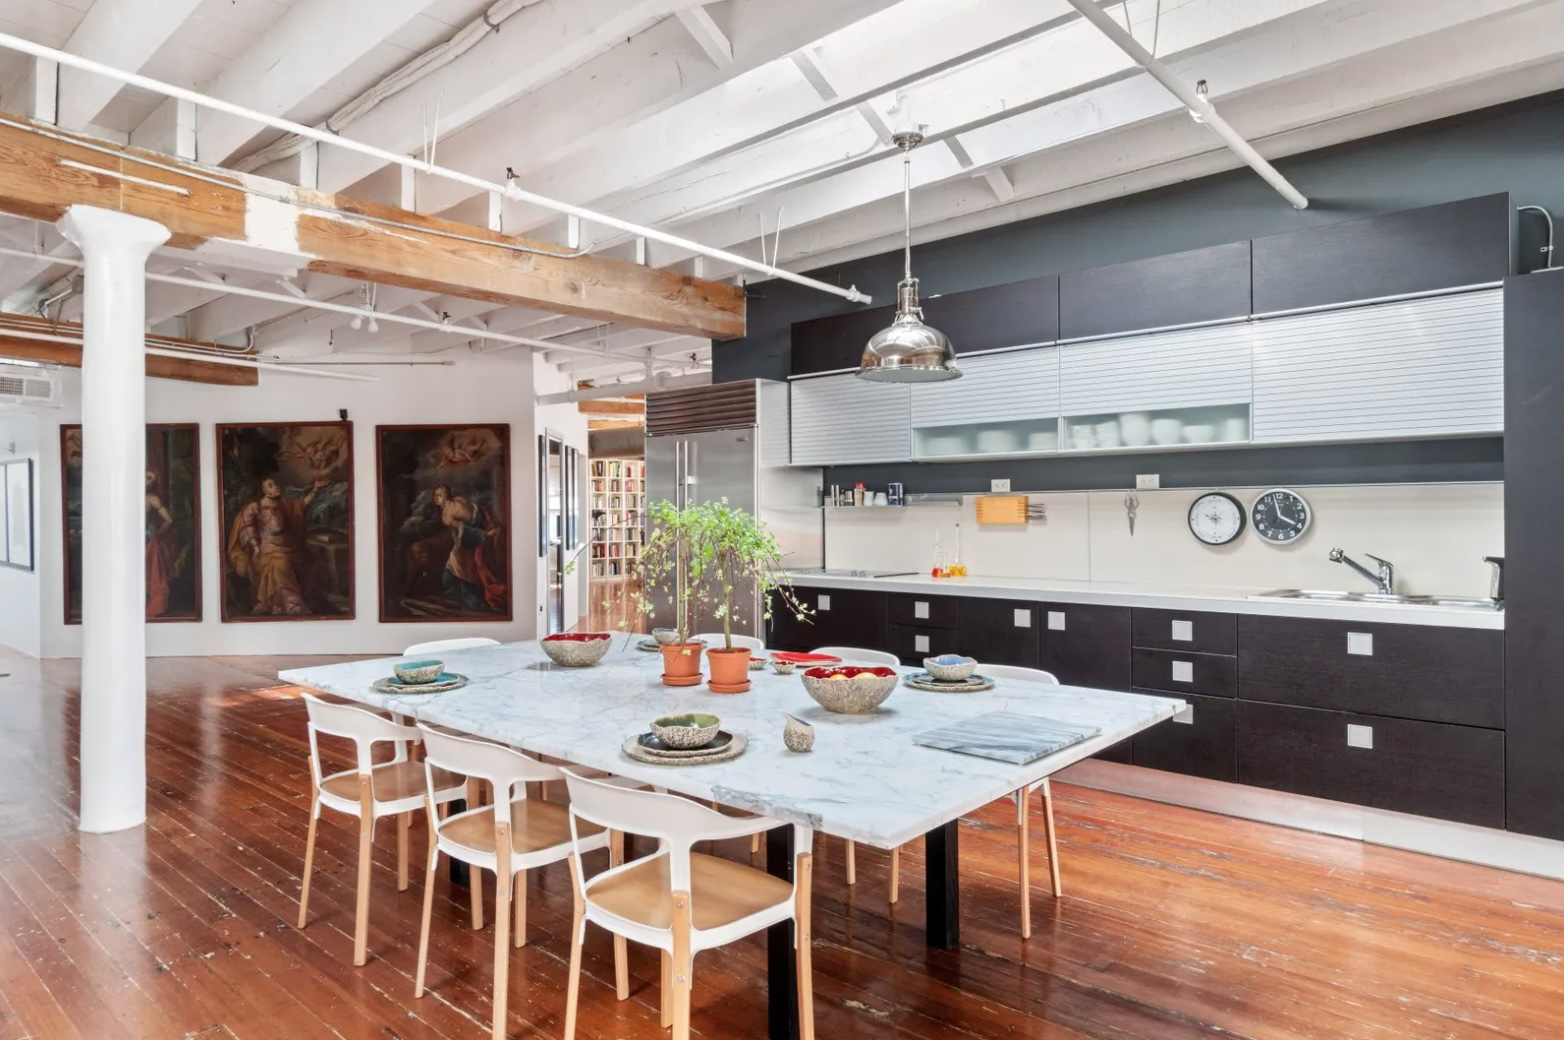 Iron and concrete colums, oak beams and raftered ceilings feature throughout. Meanwhile the kitchen is used as an informal divider to zone off an area of the open floorplan